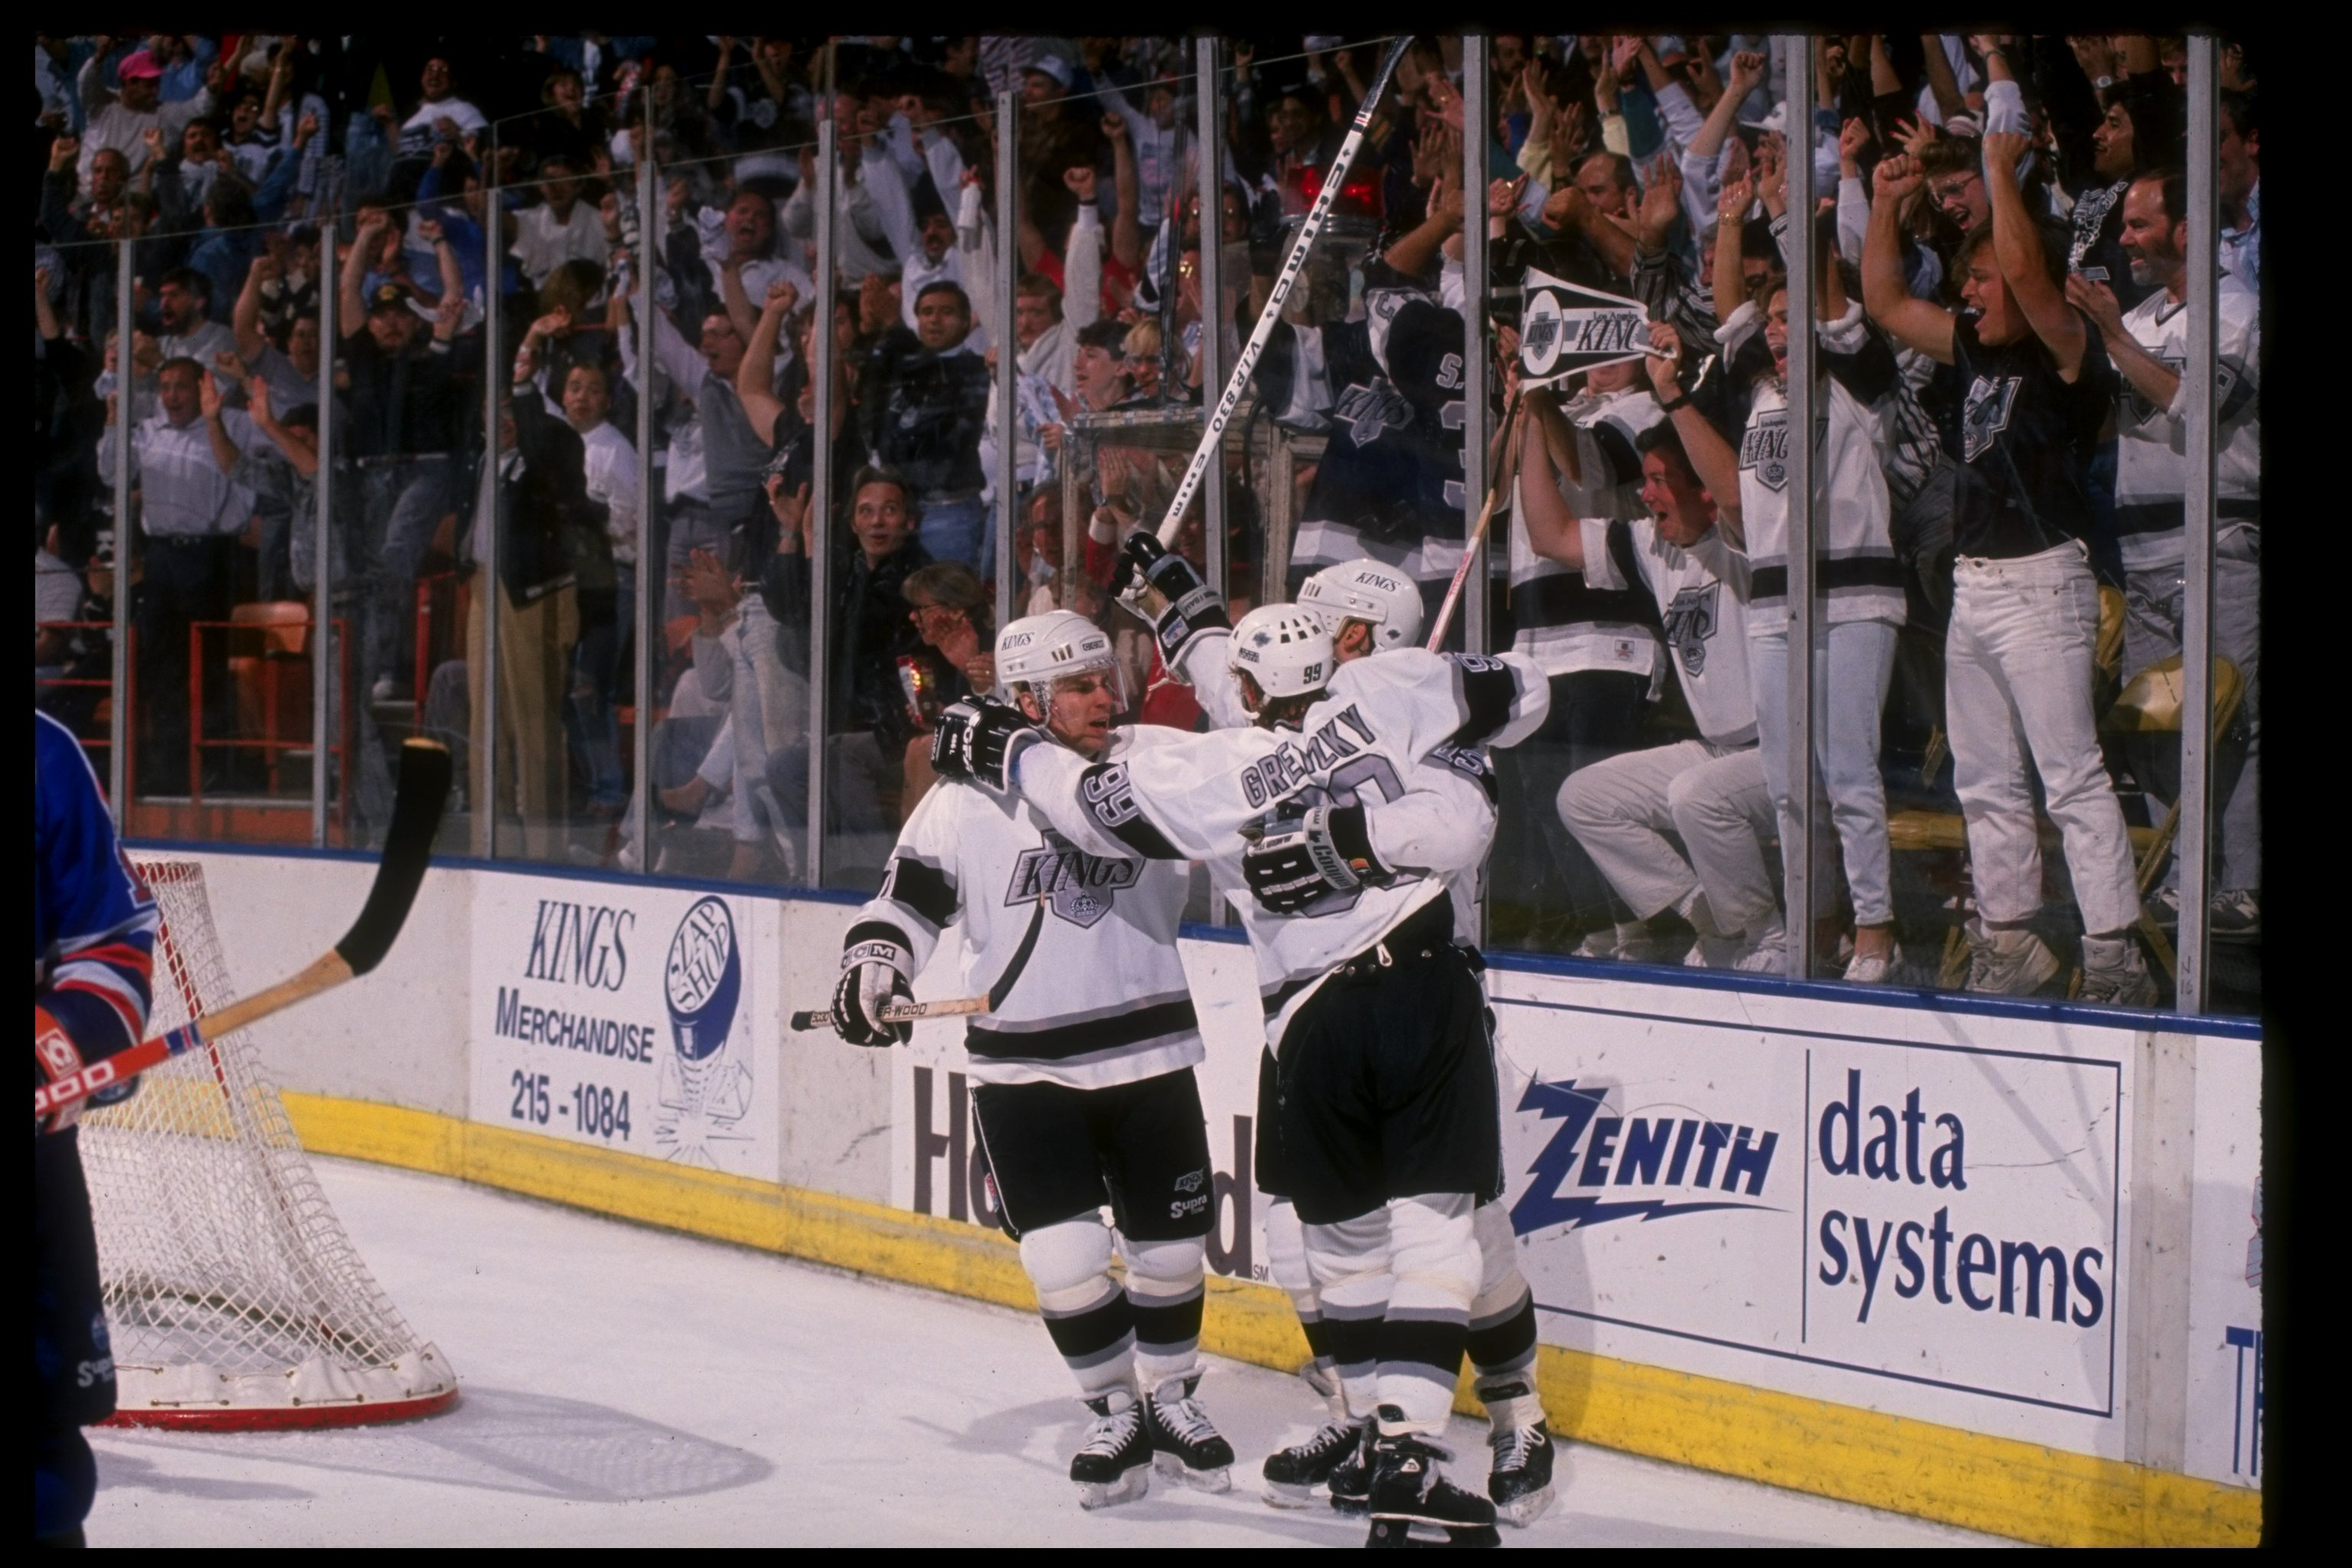 Forward Chris Kontos of the Los Angeles Kings after scoring a goal.